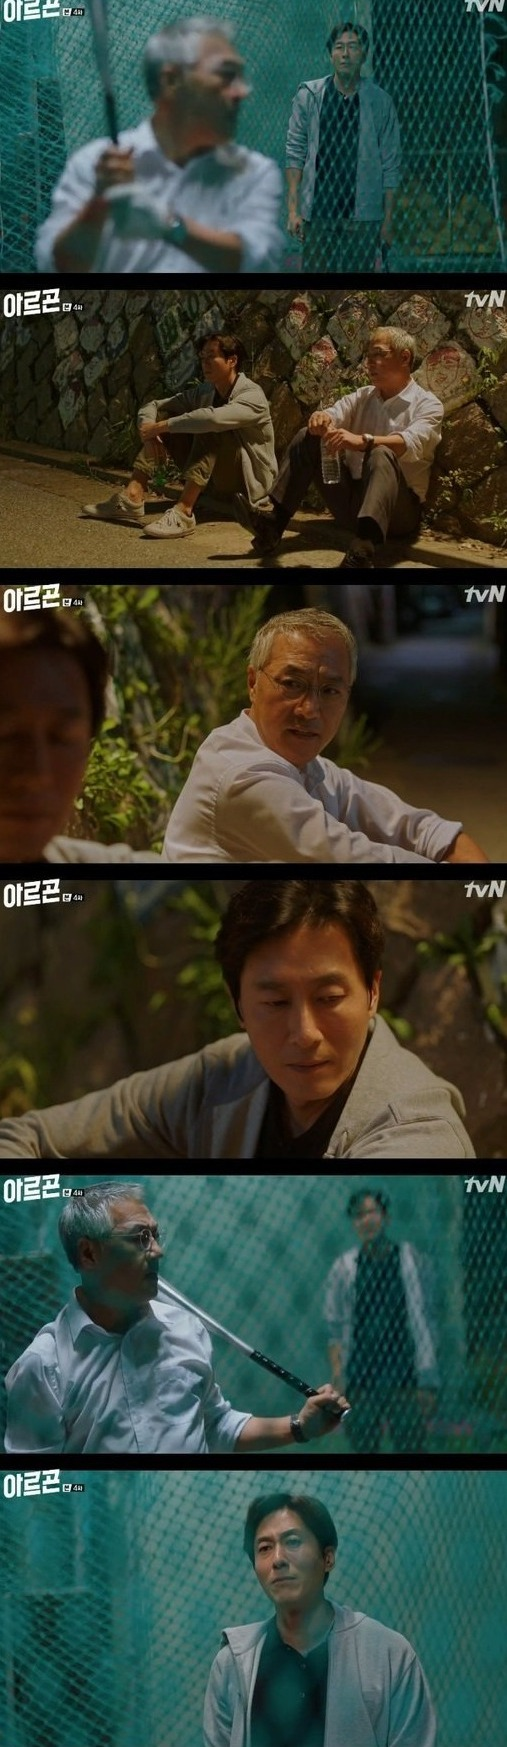 [Spoiler] Added episode 4 captures for the Korean drama 'Argon'